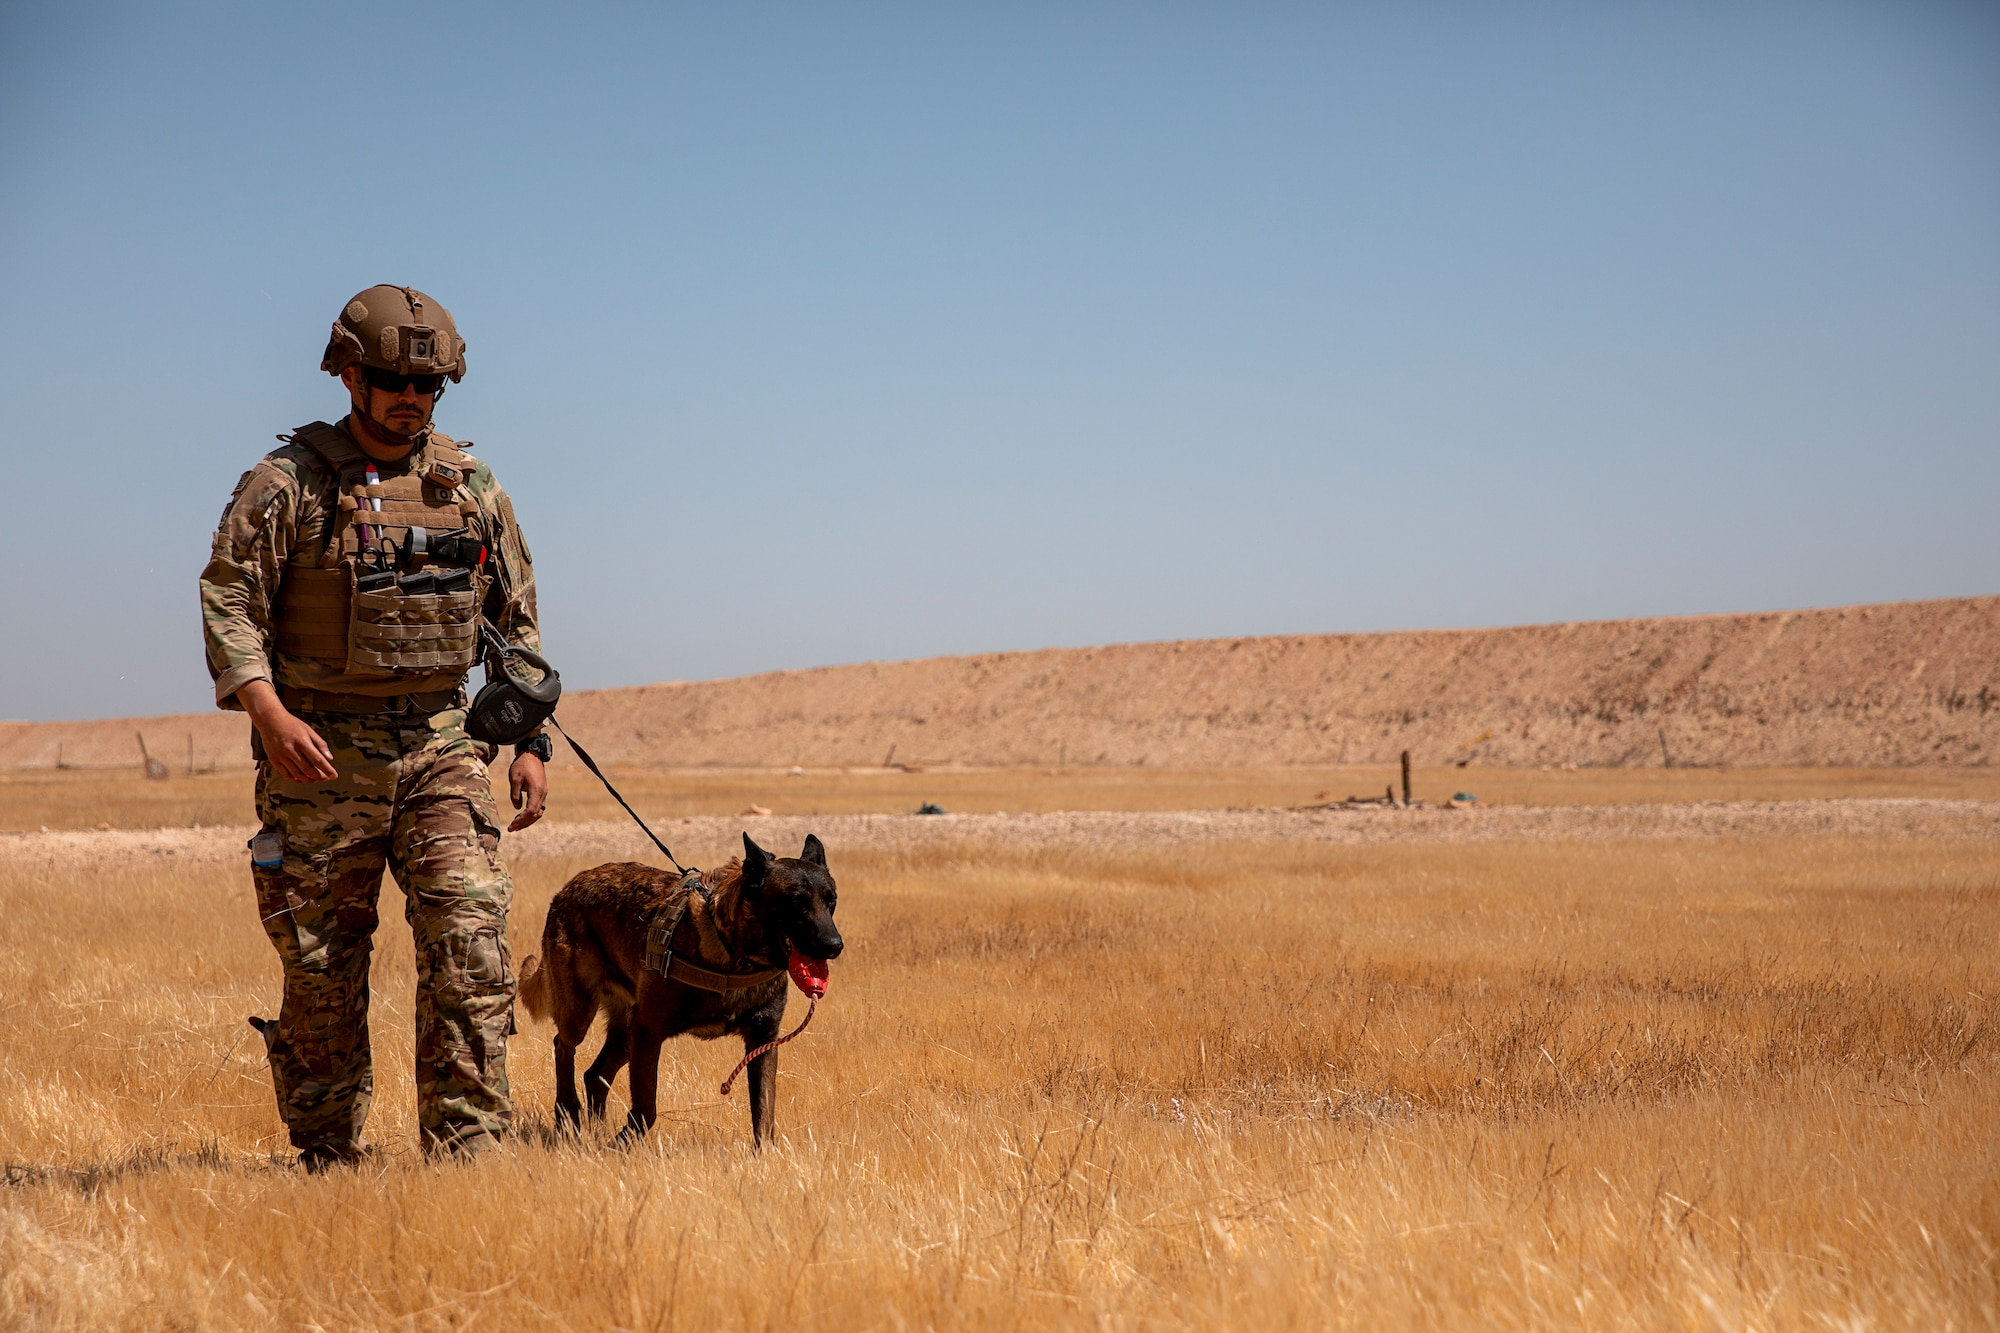 U.S. Soldiers and Military Working Dogs • Live Fire Exercise • Iraq, May 8, 2020